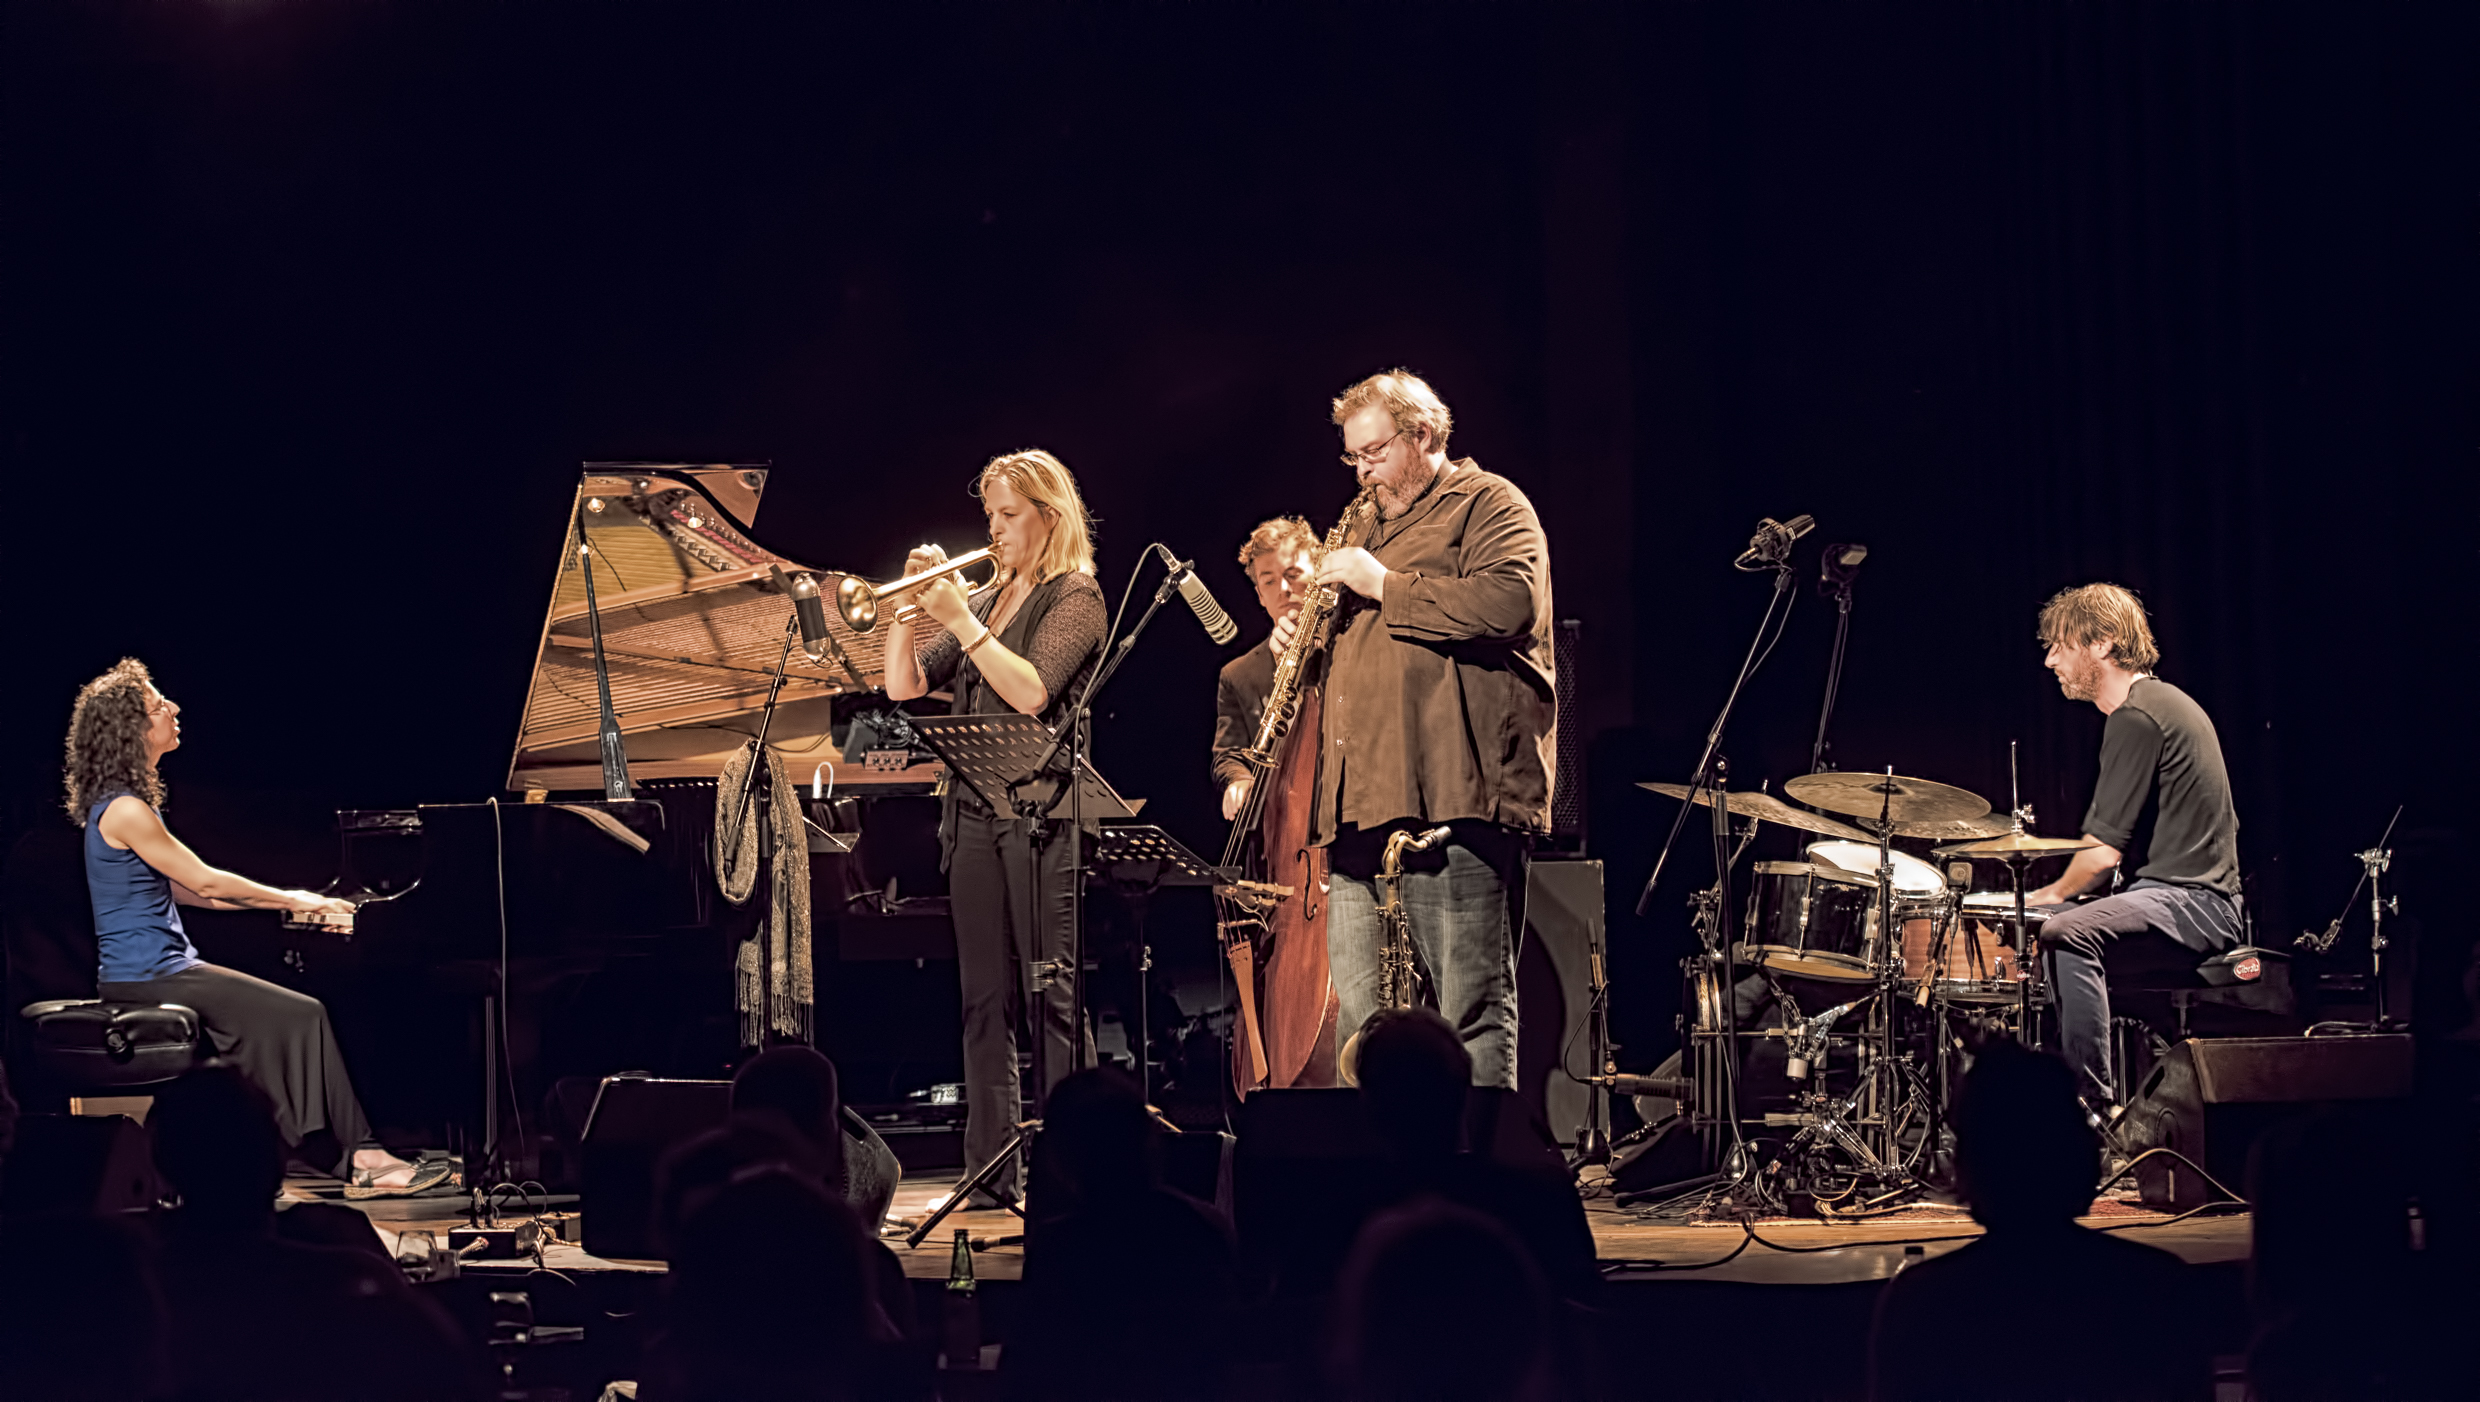 Marianne Trudel, Ingrid Jensen, Remi-Jean Leblanc, Jonathan Stewart and Robbie Kuster with the Marianne Trudel 4 at the Montreal International Jazz Festival 2015